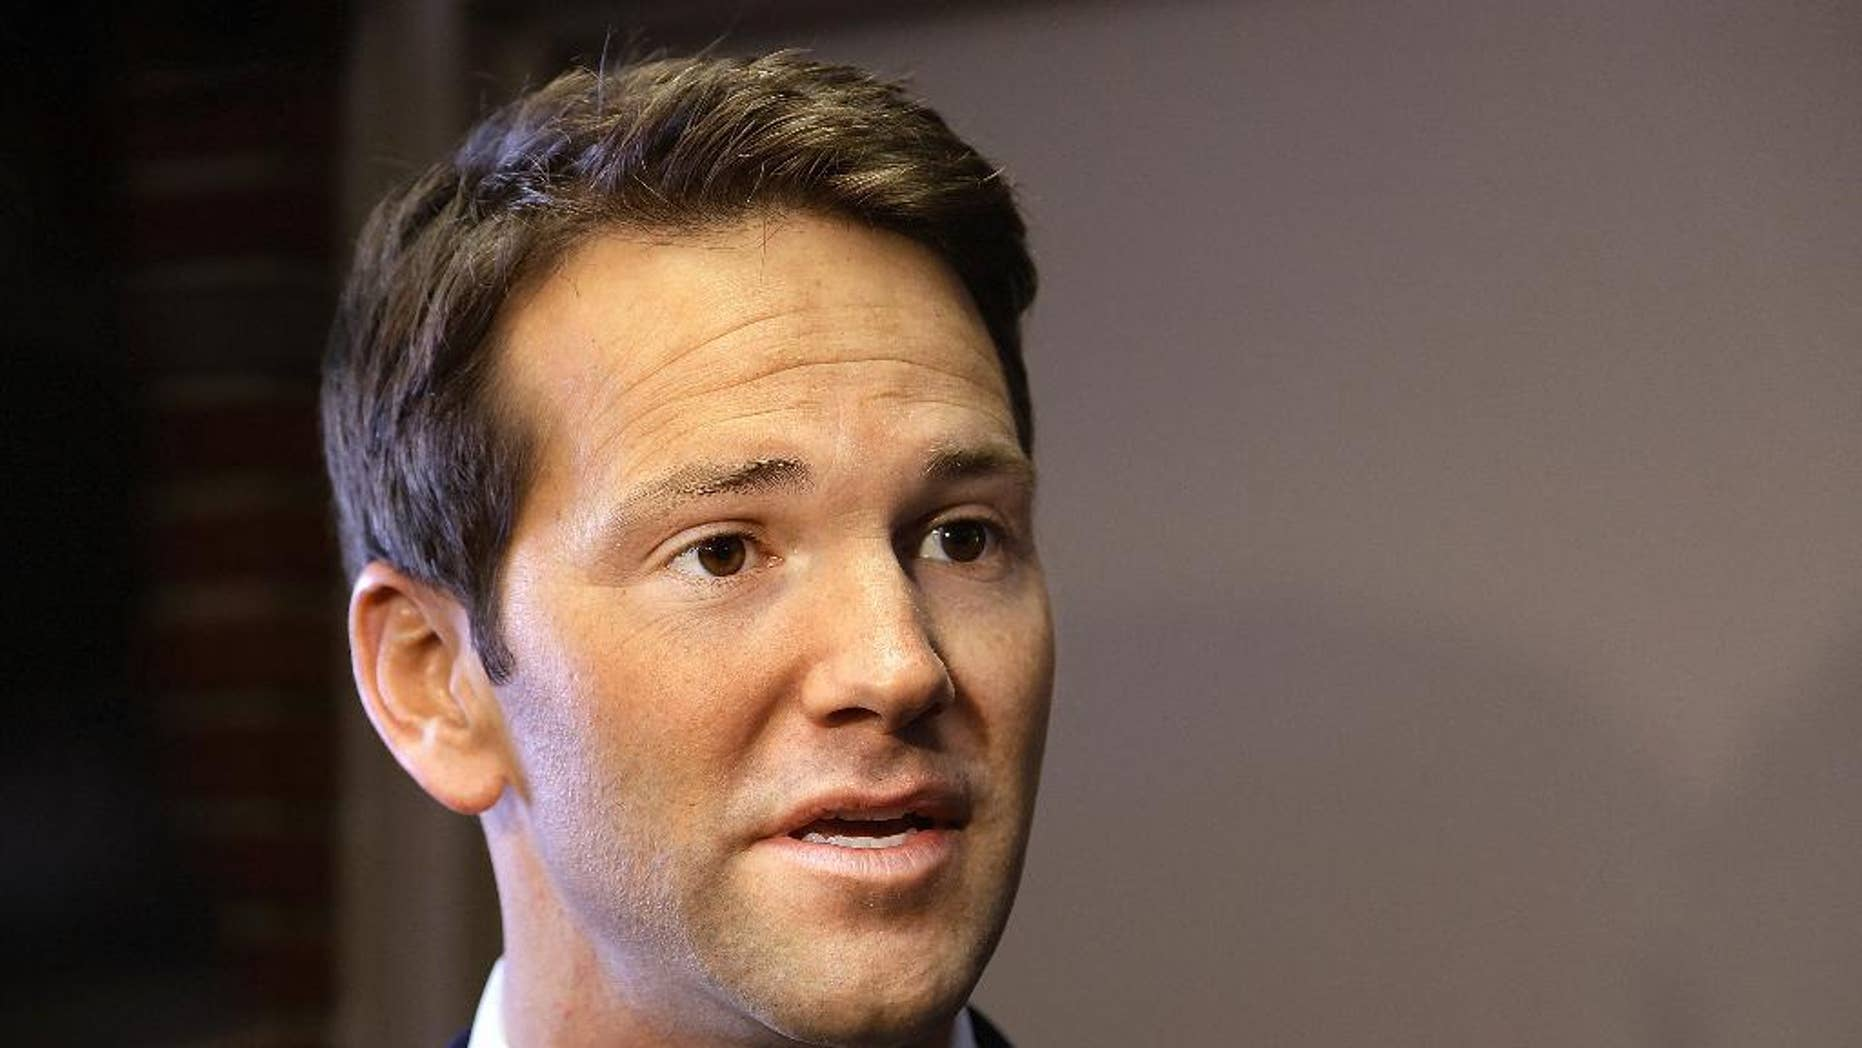 Former Rep. Aaron Schock still faces 22 counts in a federal corruption indictment.